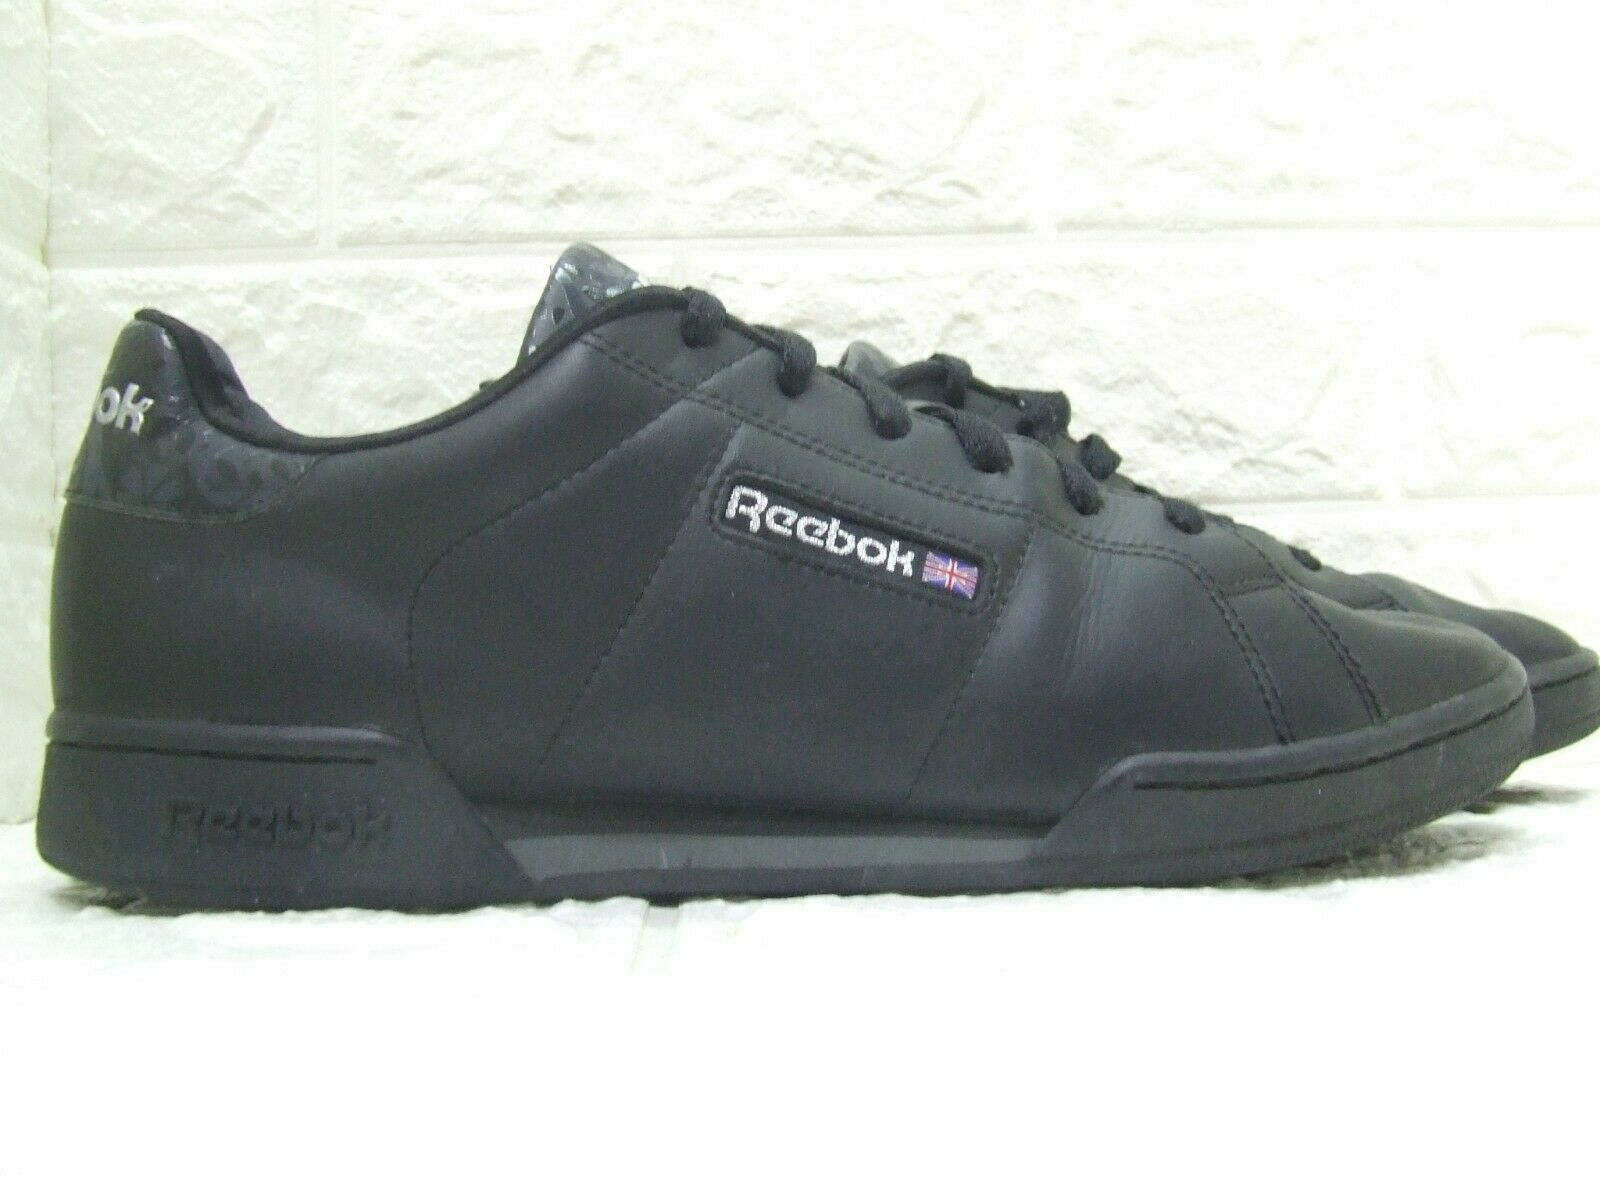 SHOES WOMAN SNEAKERS REEBOK LEATHER size US 10 - 41 (141)